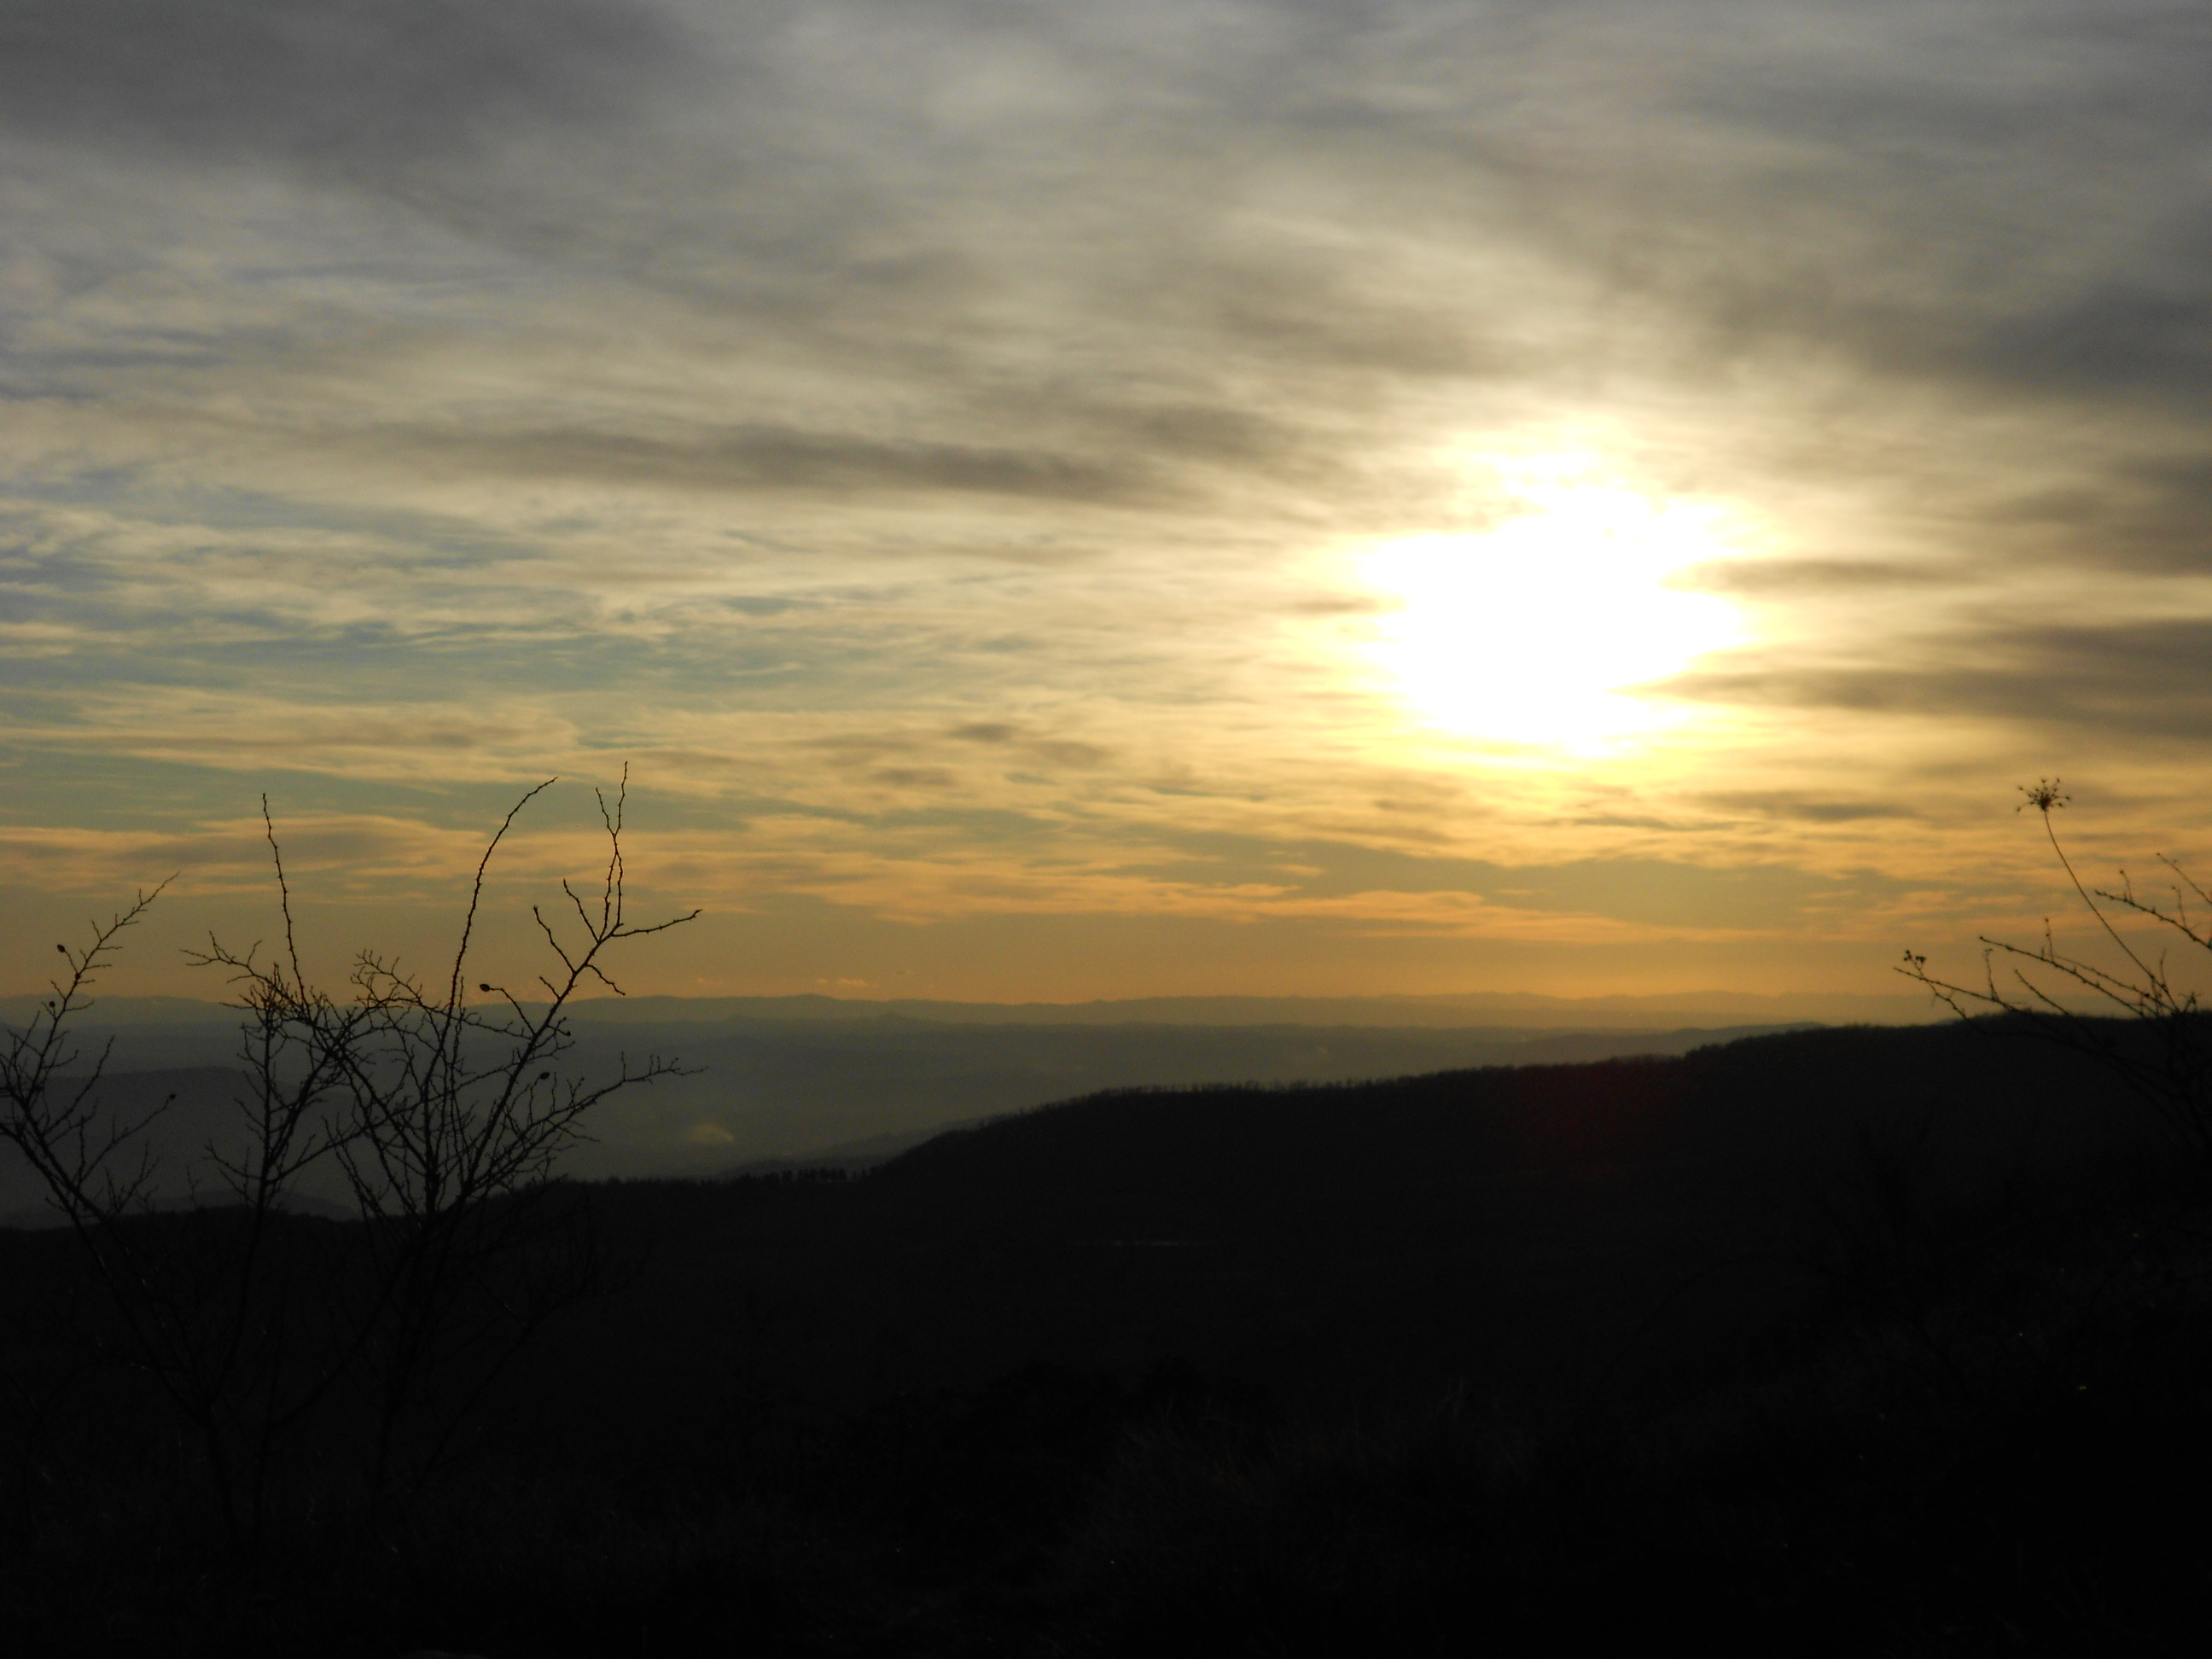 The beautiful and mesmerizing sunset of monte giovi